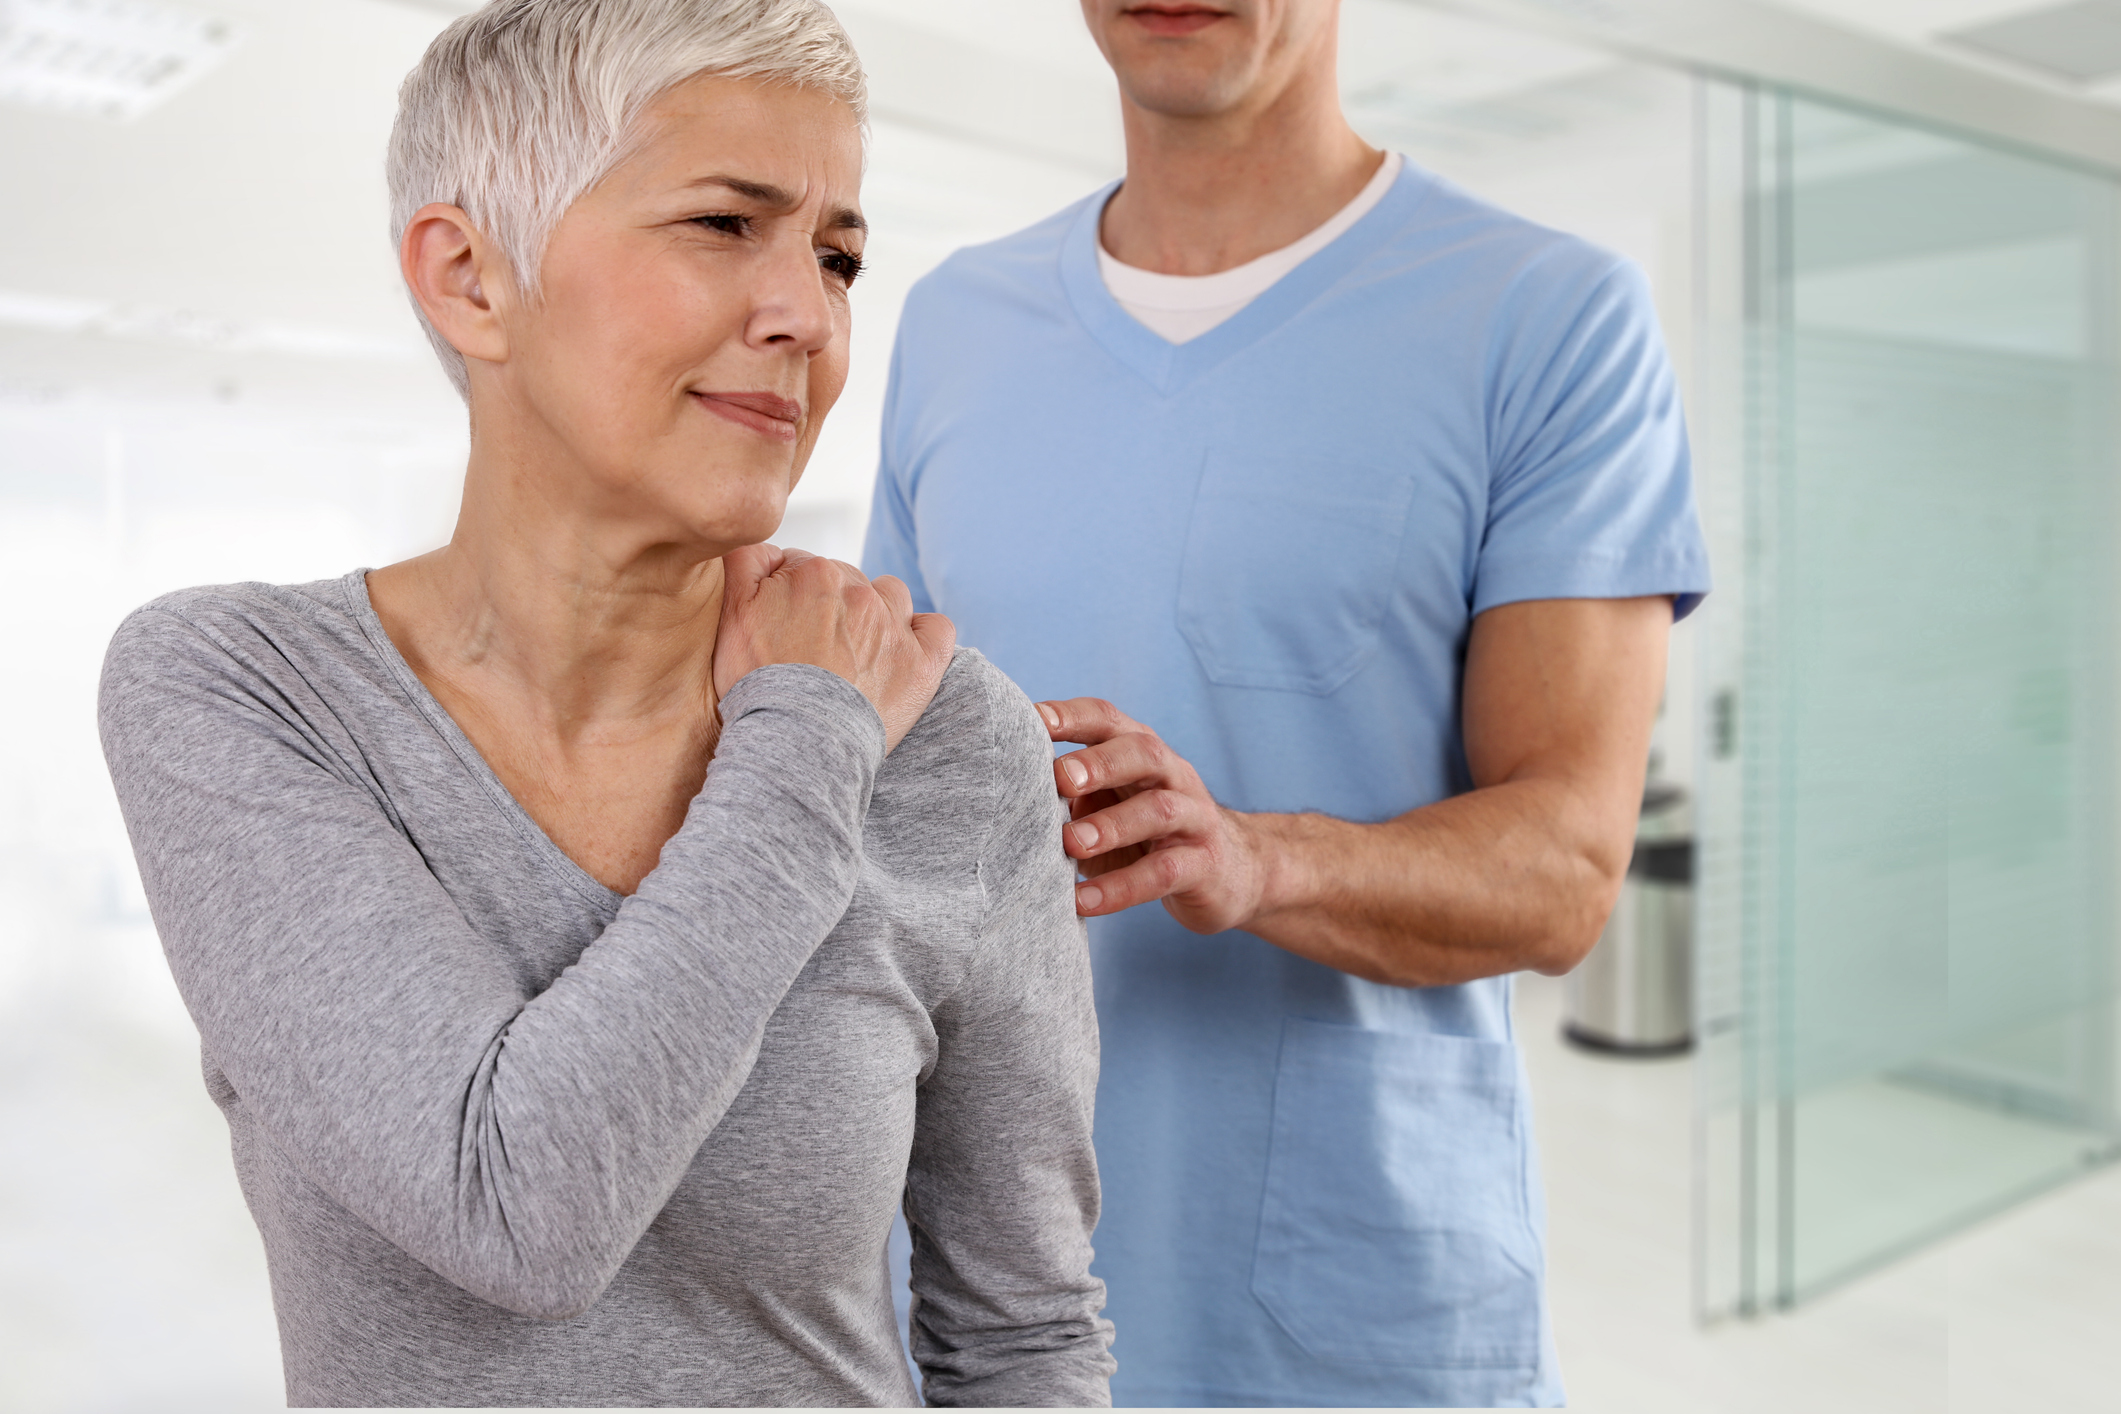 How to choose a chiropractor in Nashville